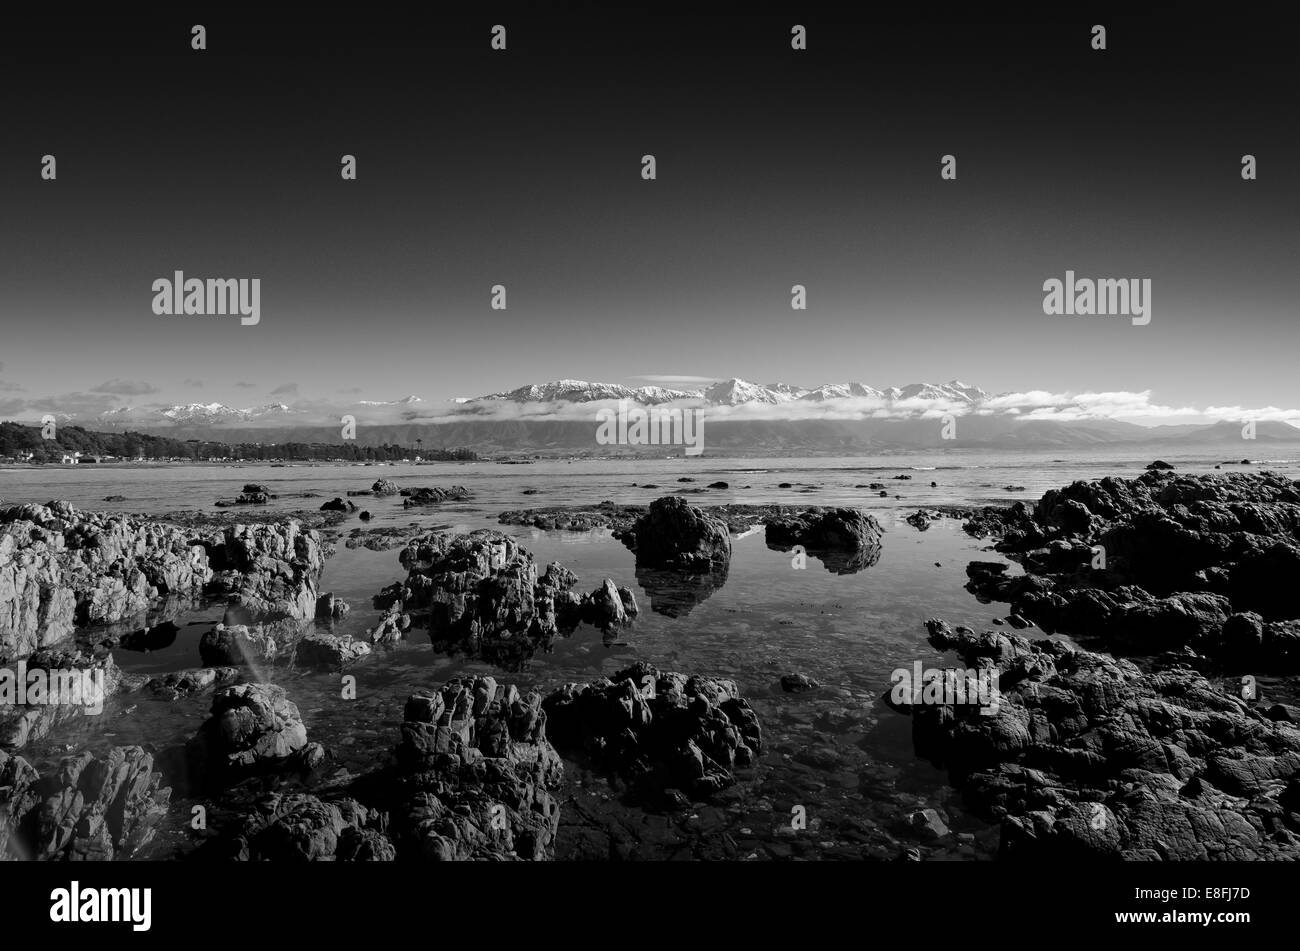 New Zealand, Kaikoura, View of rocky beach and mountains - Stock Image